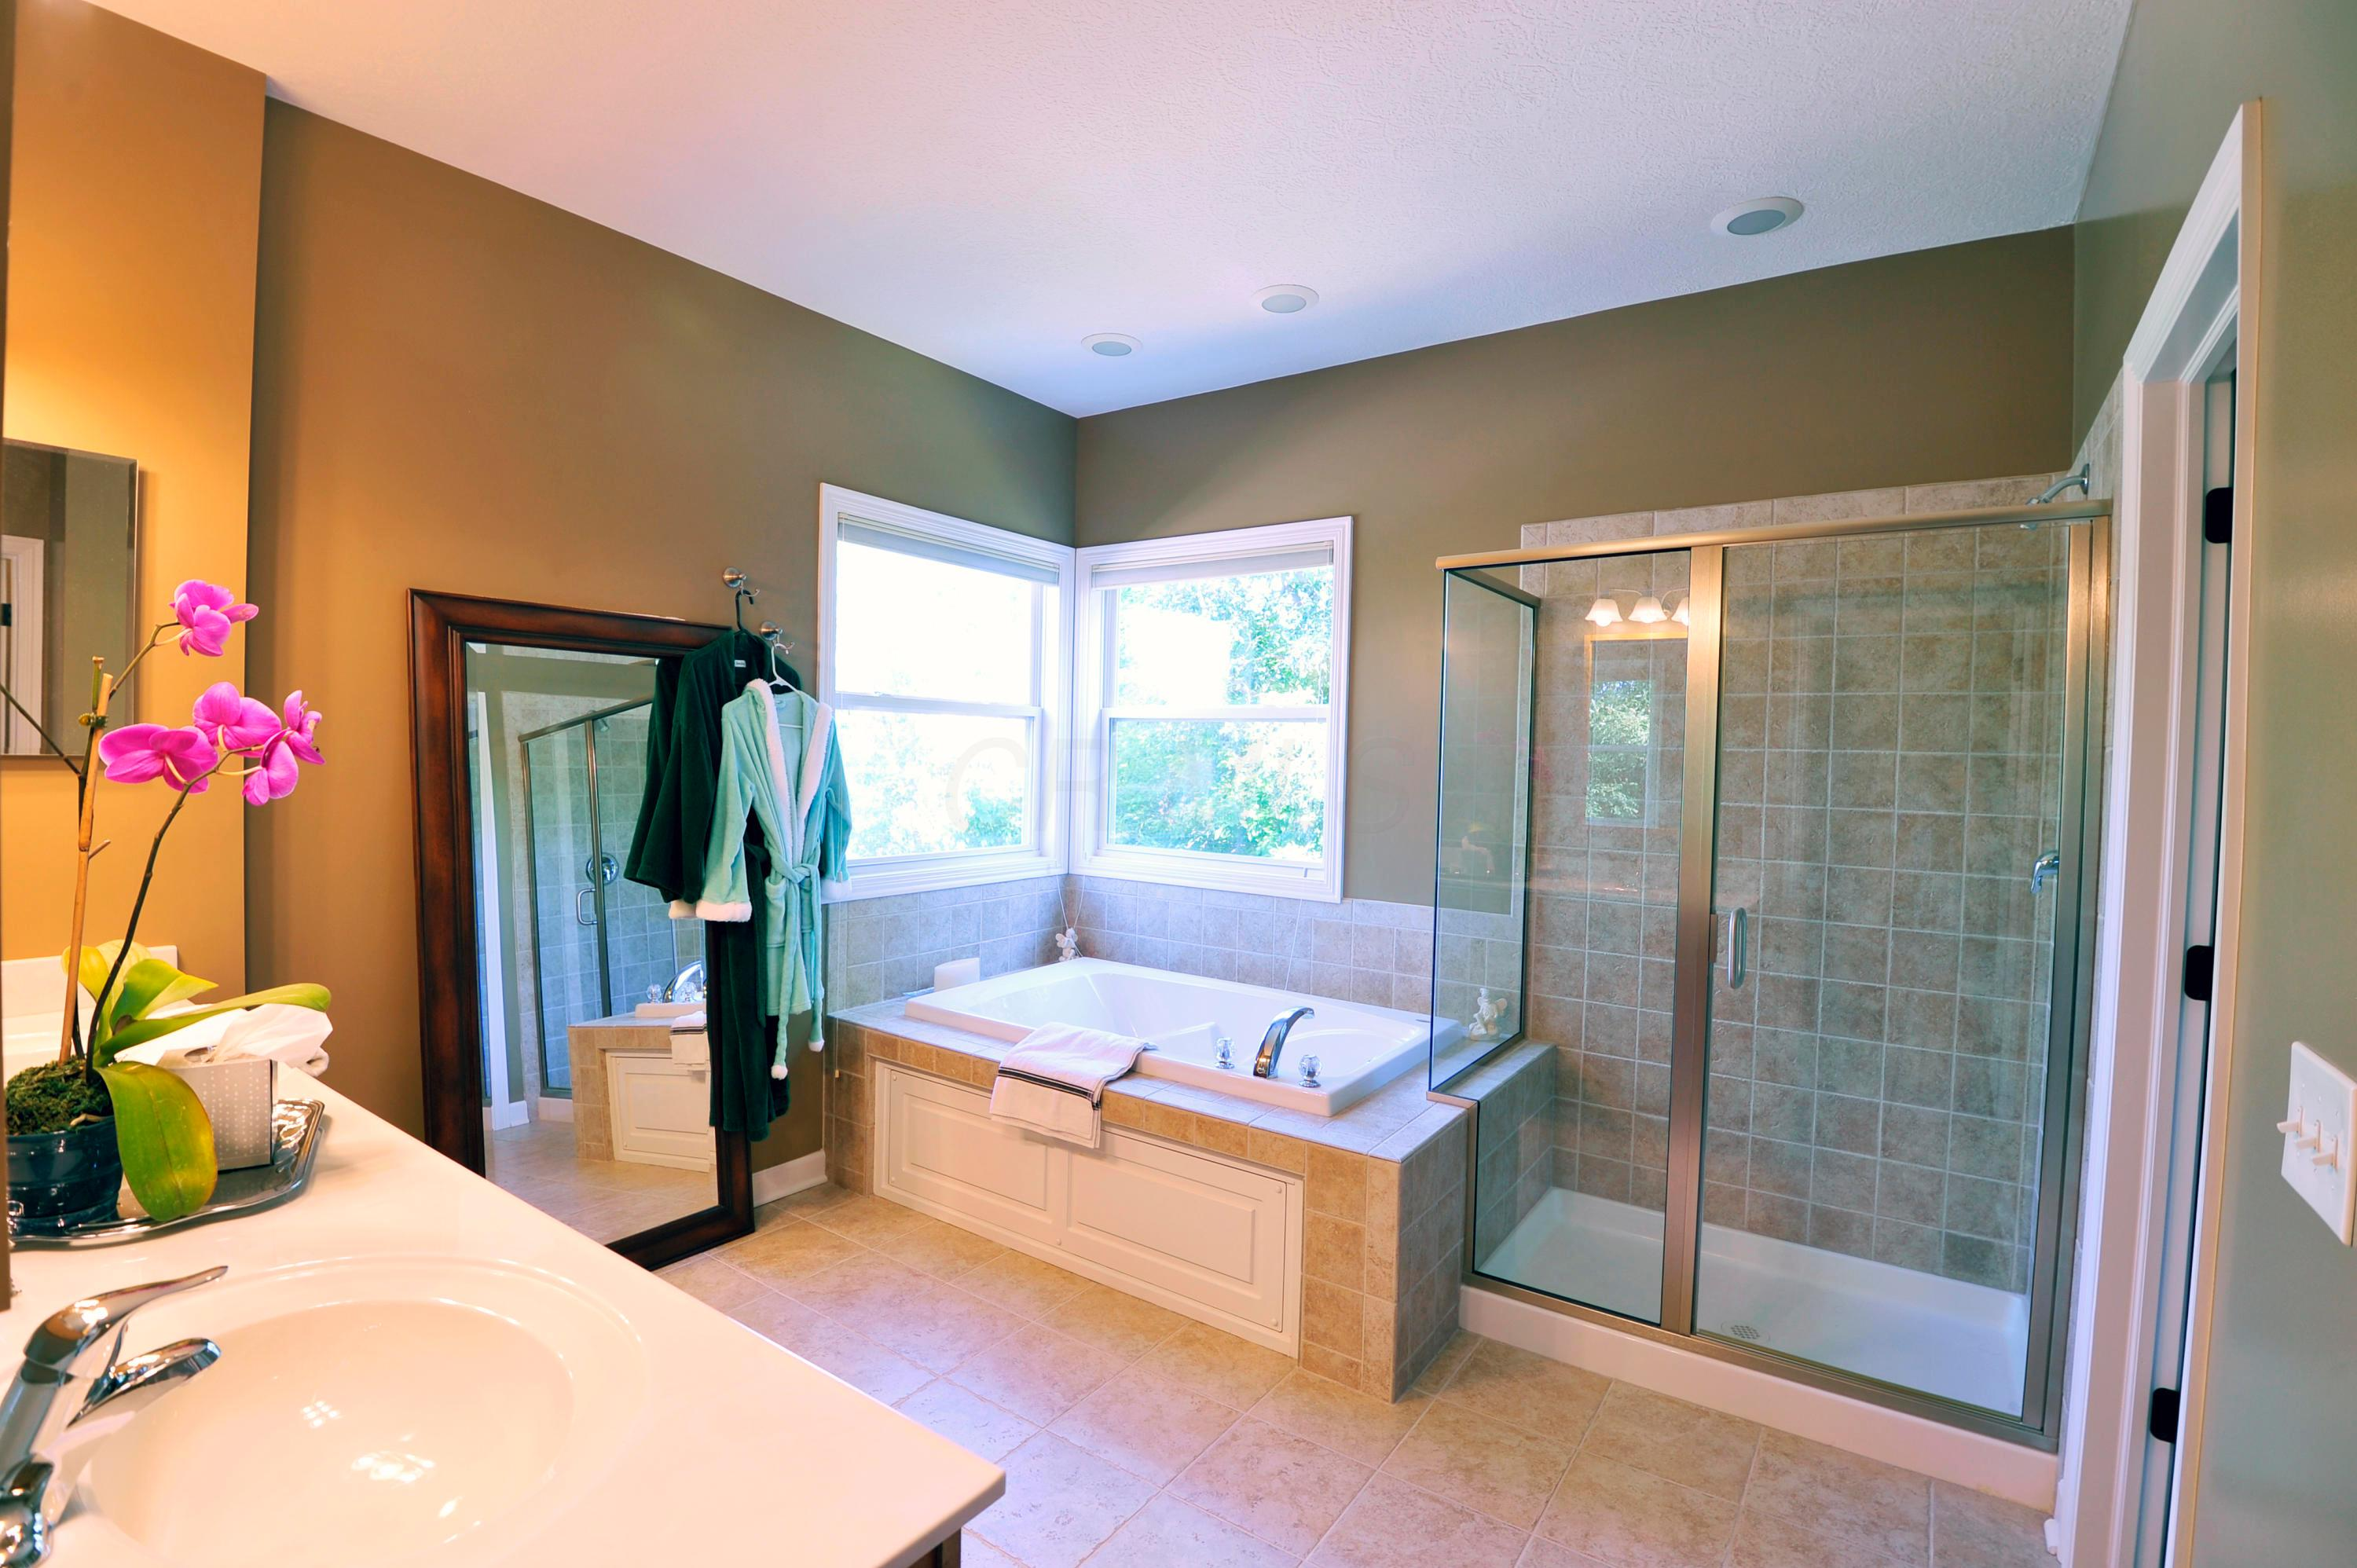 6784 Royal Plume Drive, Dublin, Ohio 43016, 4 Bedrooms Bedrooms, ,5 BathroomsBathrooms,Residential,For Sale,Royal Plume,220023120